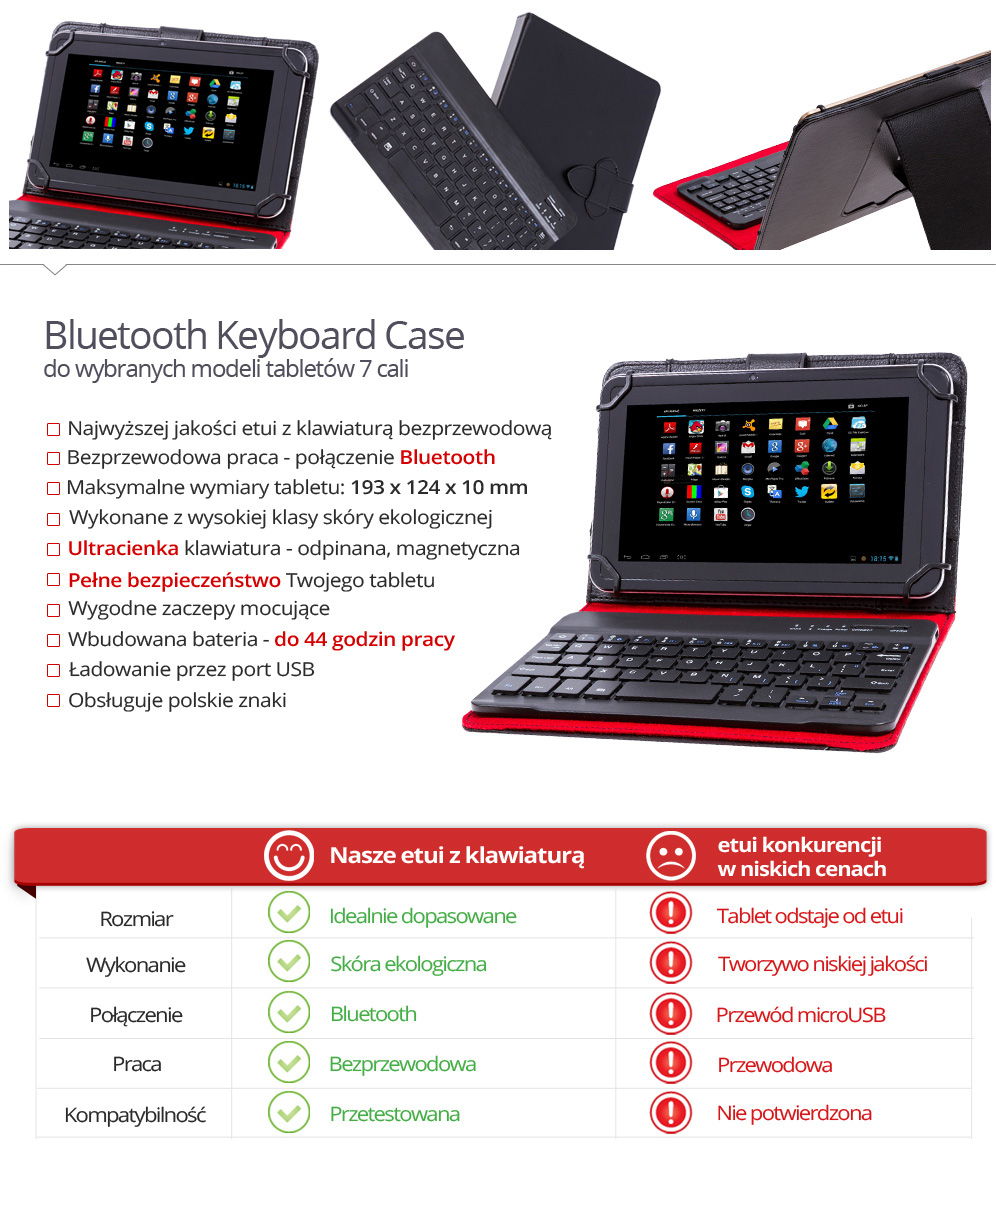 Etui z klawiaturą bluetooth do tabletu 7 cali